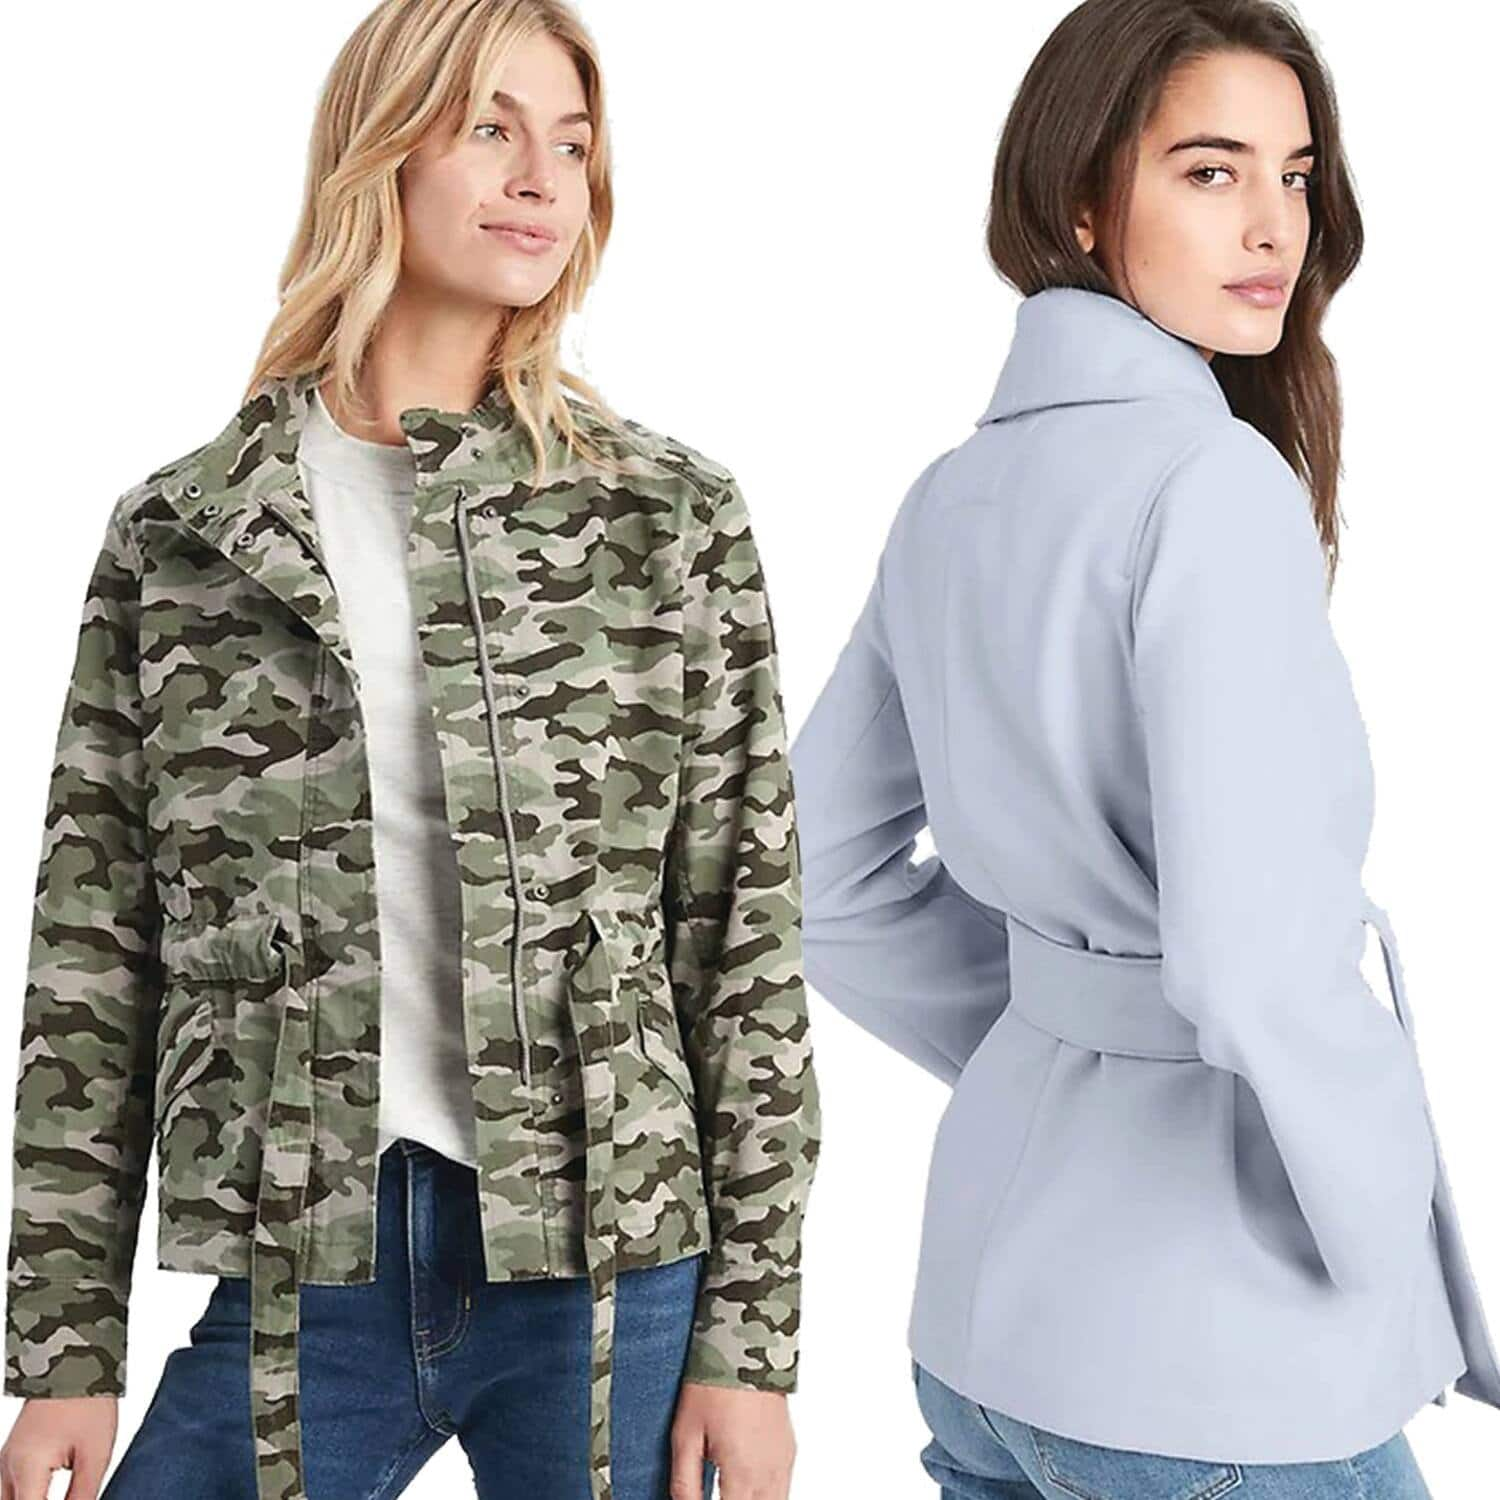 Women's Banana Republic Factory Tie-Waist Utility Jacket $21 Shipped, High-Rise Dot Ankle Pant $12.49 & More + FS from $25+